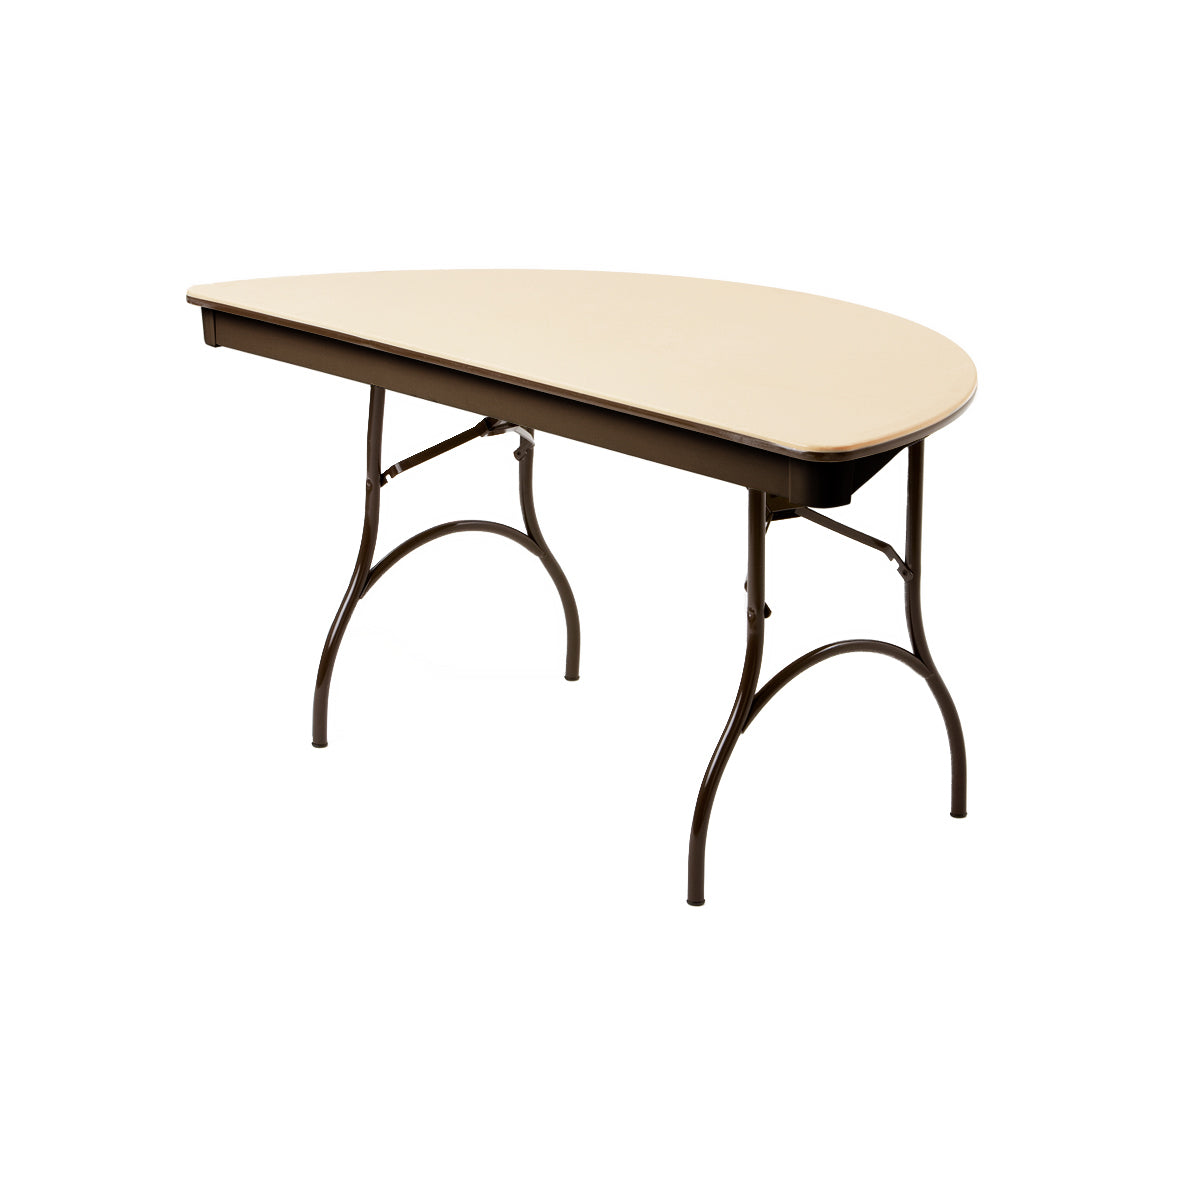 Mitylite abs plastic 60 half round folding table atlas lane mitylite abs plastic 60 half round folding table beige watchthetrailerfo